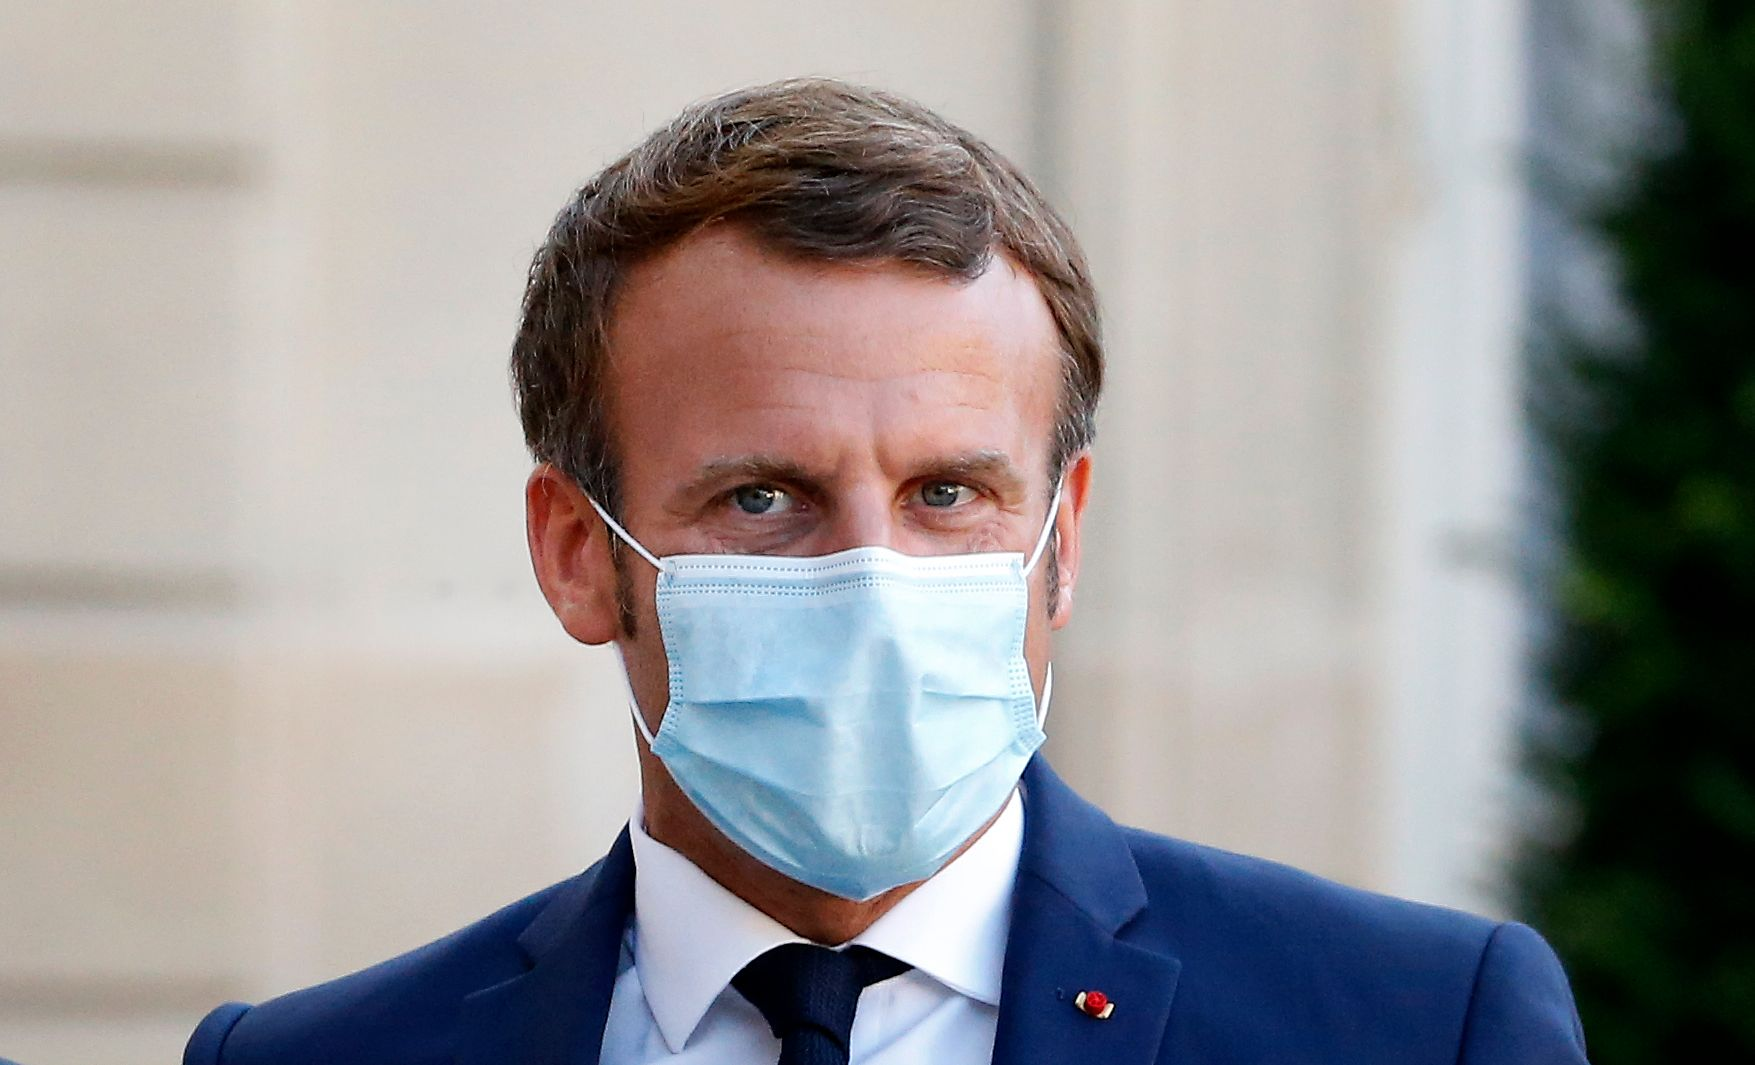 Le président de la République Emmanuel Macron | Photo : Getty Images